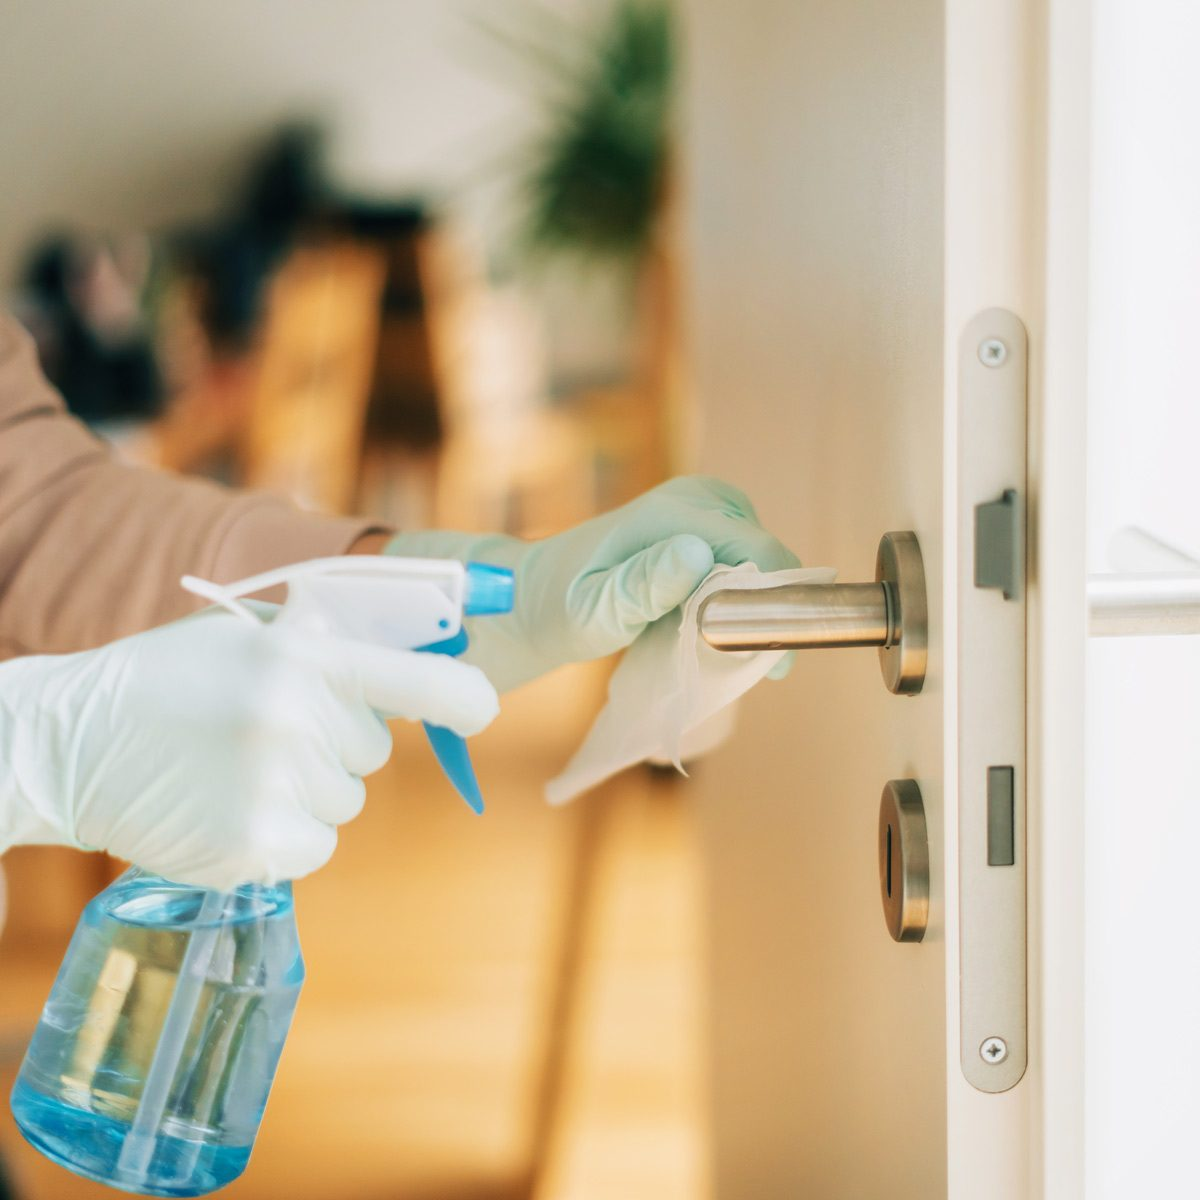 Woman cleaning a door handle with a disinfection spray and disposable wipe